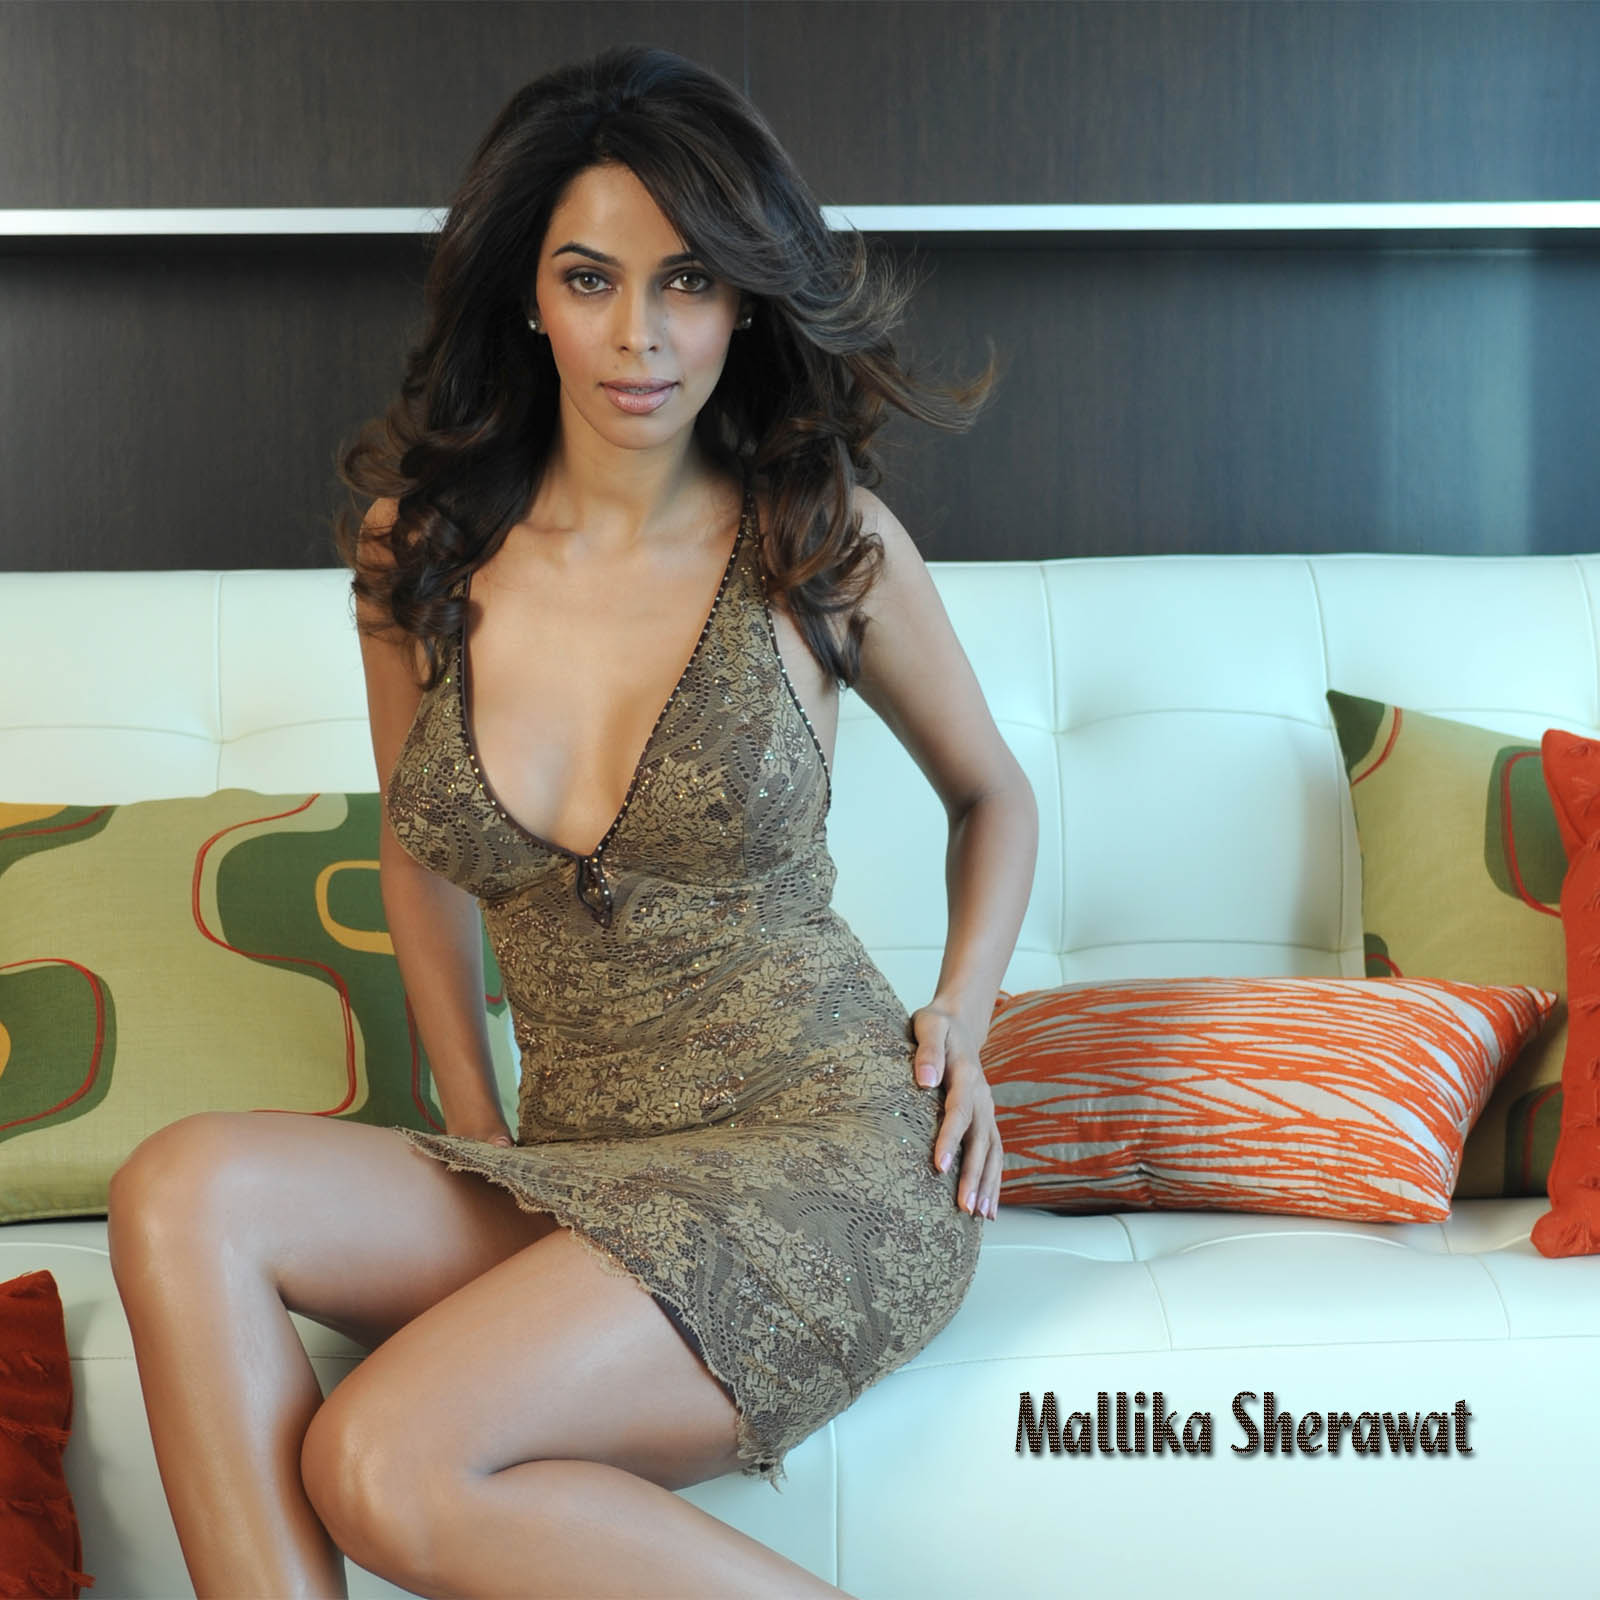 Malika Sherawat Sex Video Download